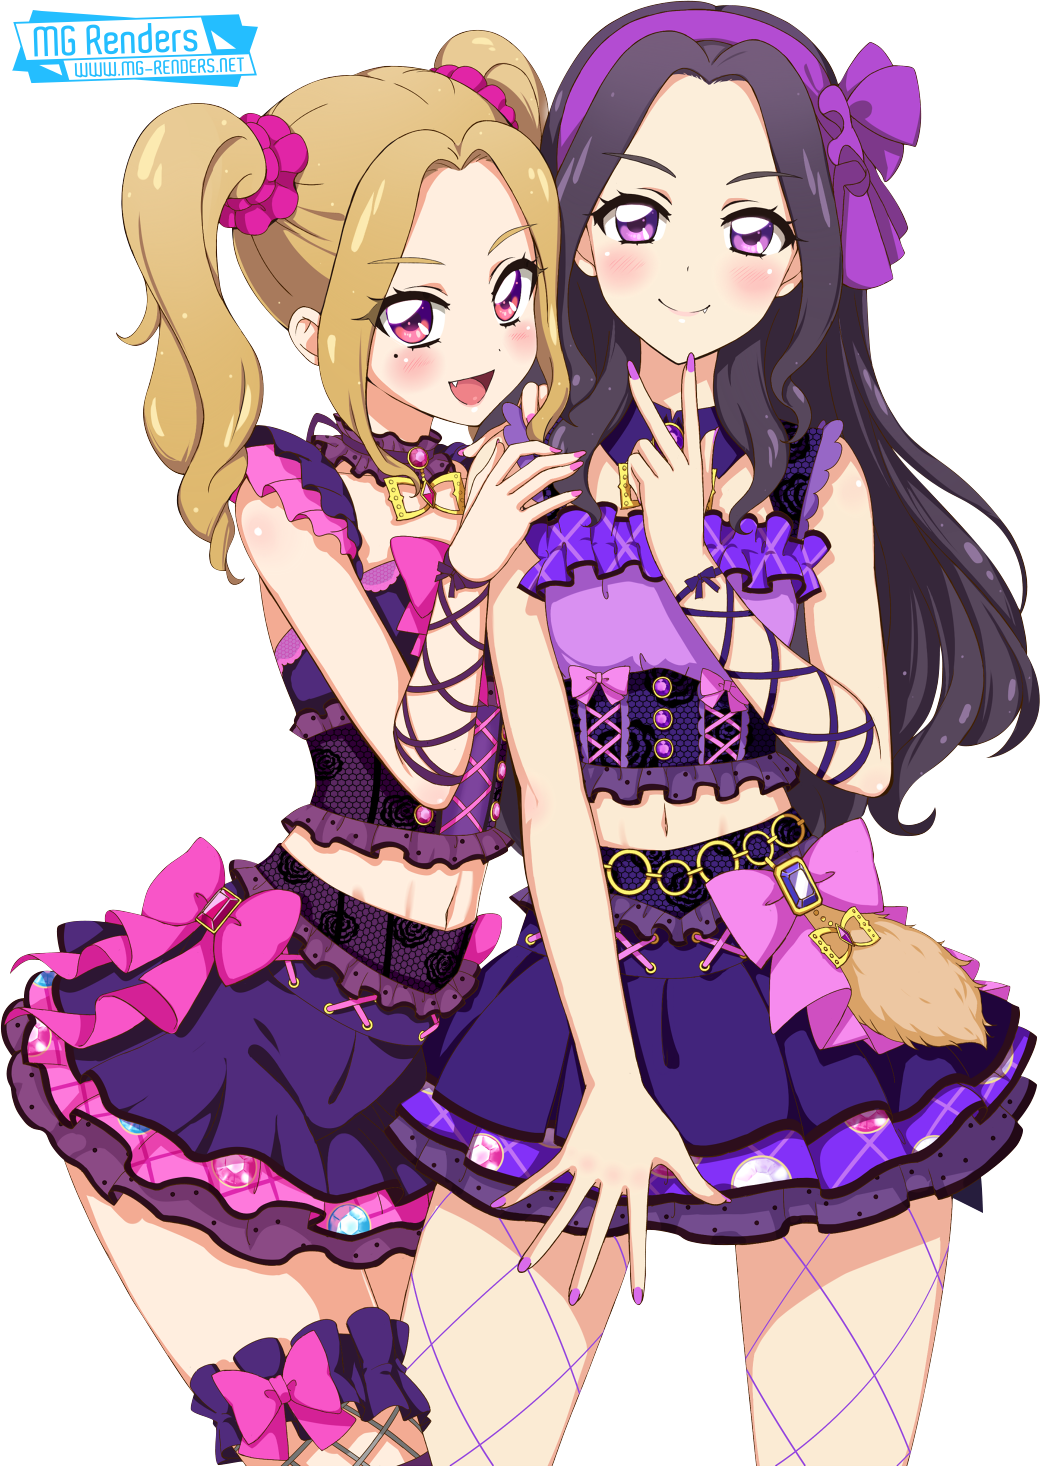 Tags: Anime, Render,  Aikatsu!,  Daichi Nono,  Shirakaba Risa,  Skirt,  Small breasts,  PNG, Image, Picture